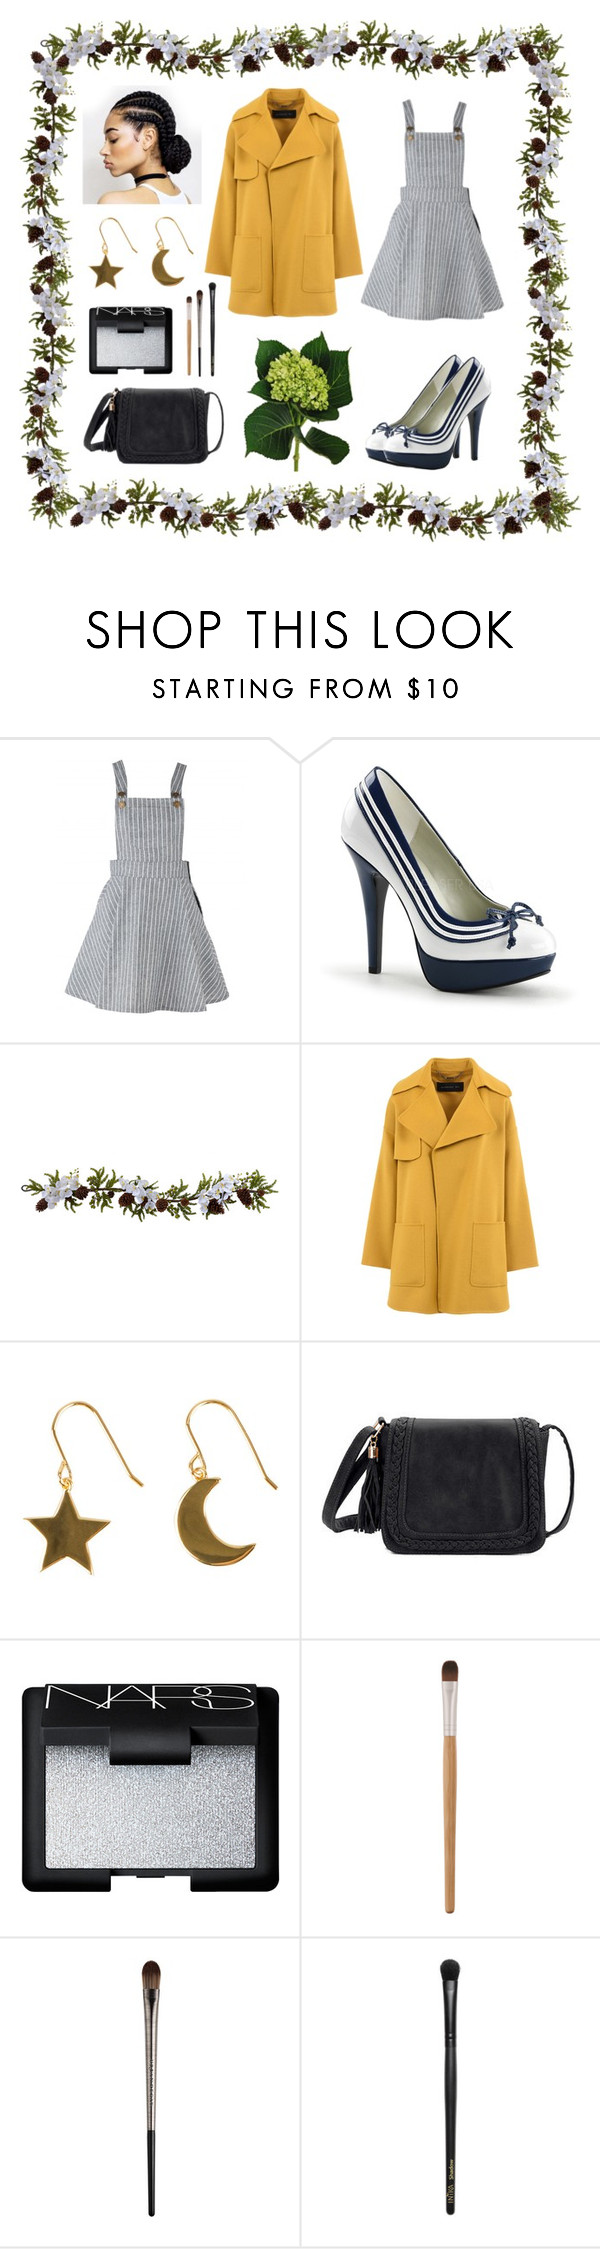 """Upbeat Morning 🌞"" by abbybencsik ❤ liked on Polyvore featuring Pinup Couture, Nearly Natural, Barbara Bui, SOPHIE by SOPHIE, NARS Cosmetics, Urban Decay, INIKA and vintage"